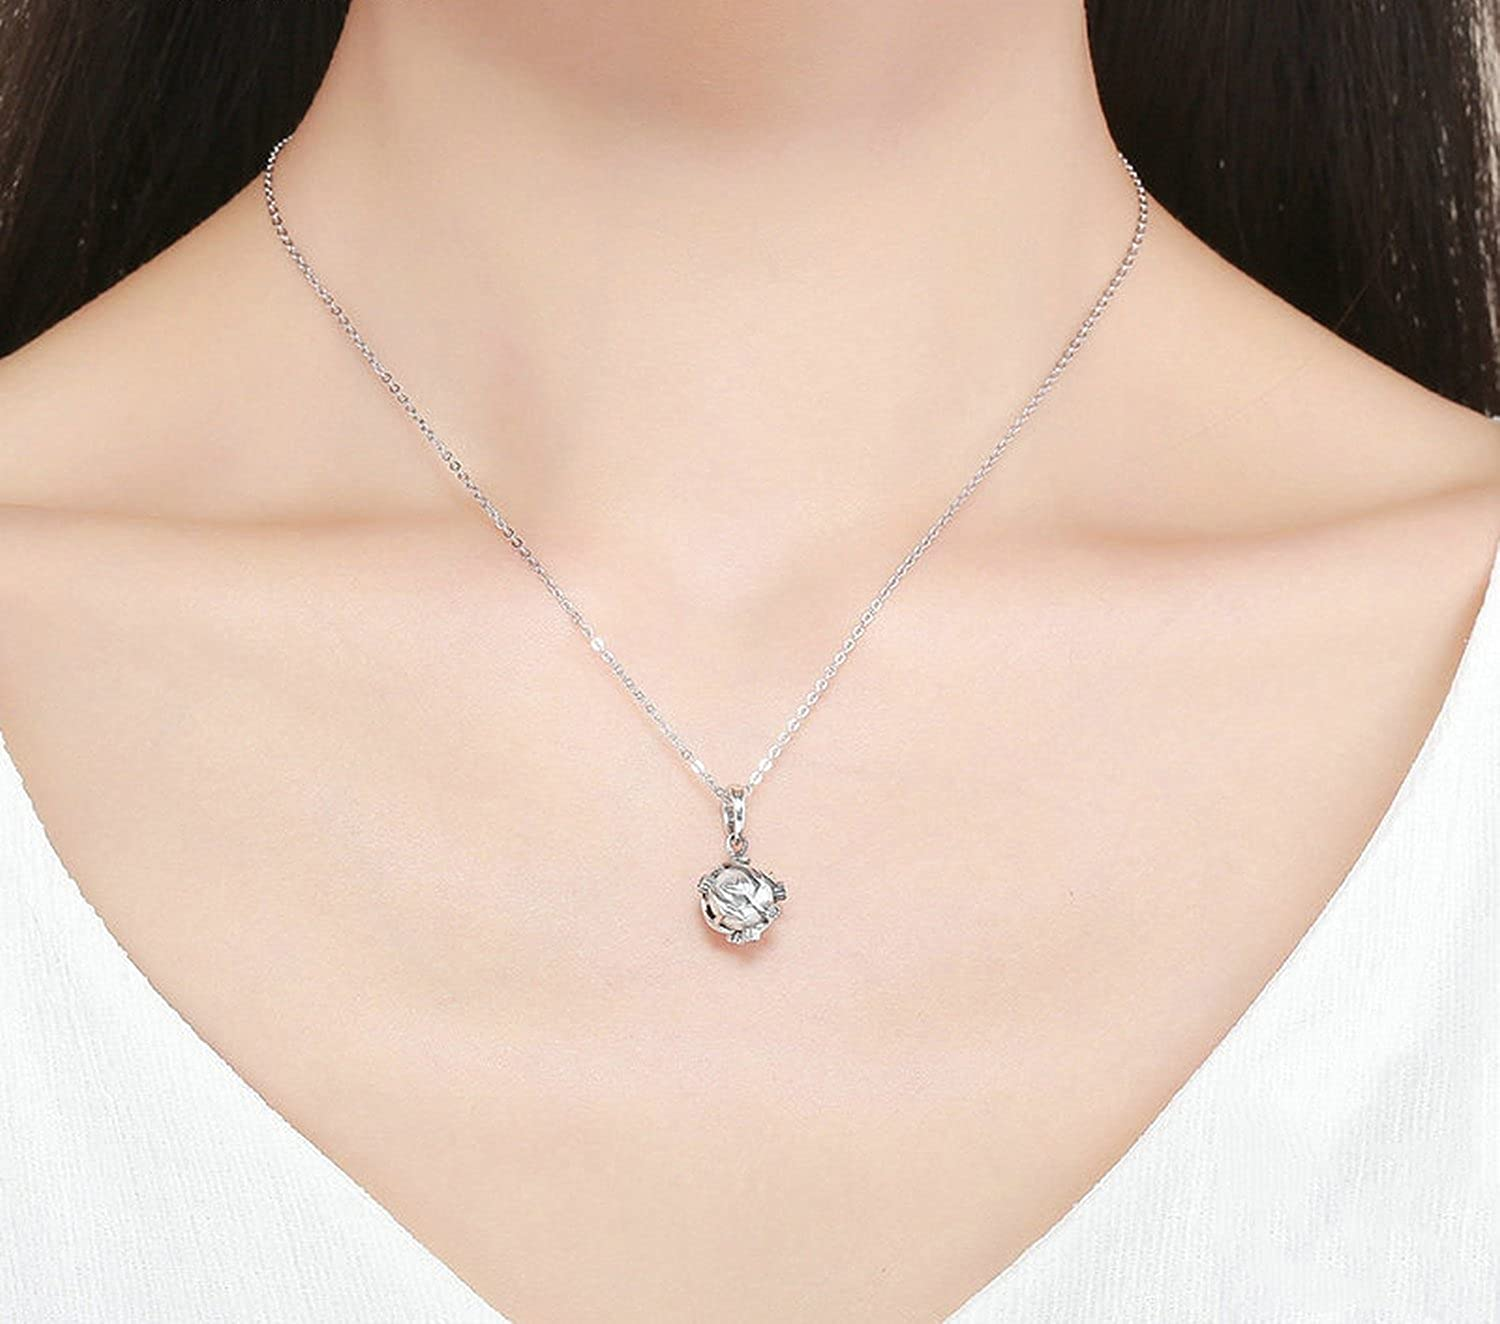 CS-DB Jewelry Silver Dazzling Vines Leaves Chain Charm Pendants Necklaces